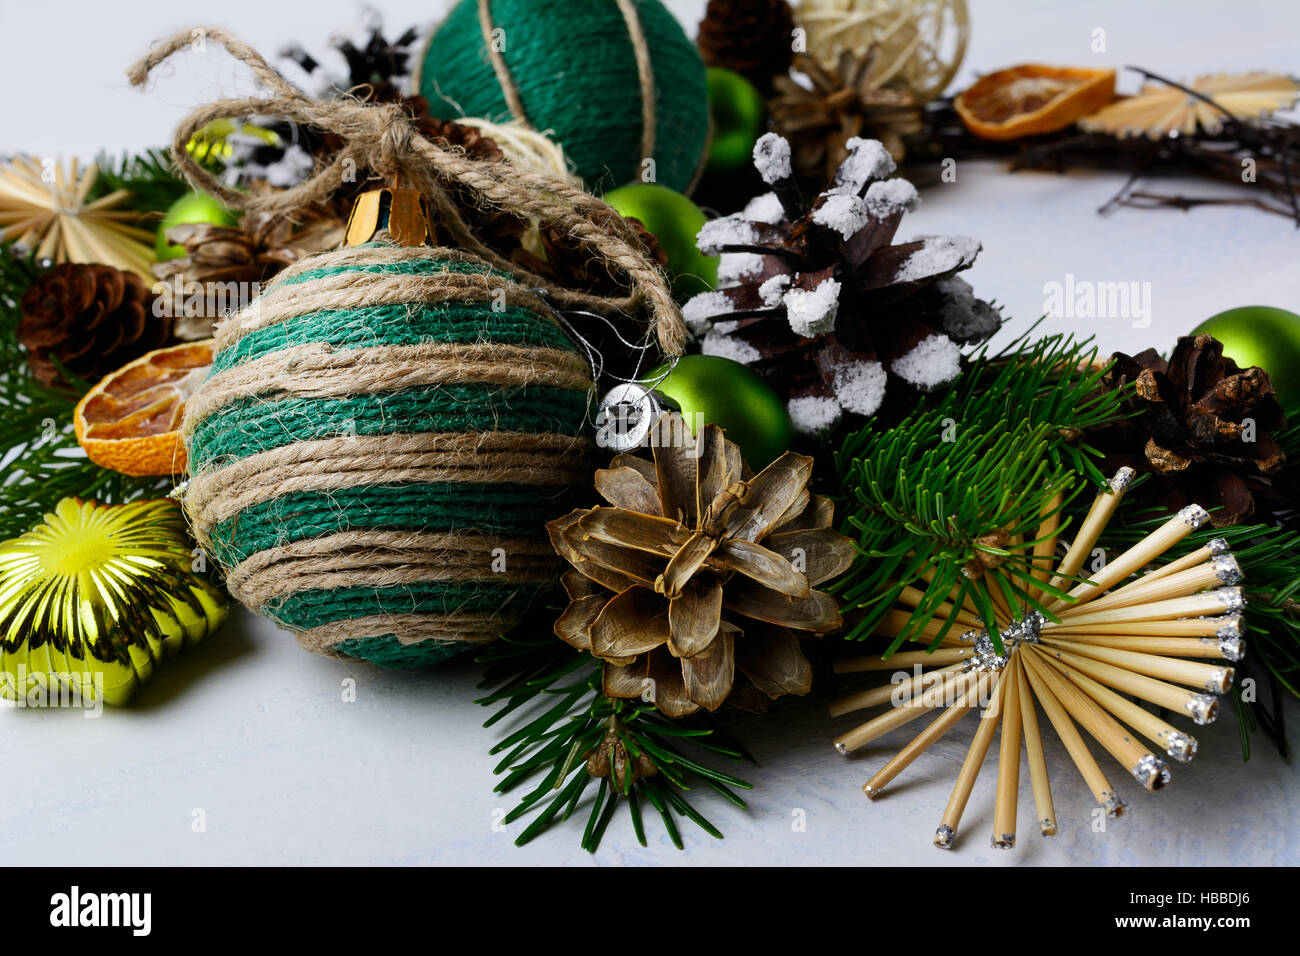 Christmas Decoration With Snowy Pine Cones And Rustic Bauble Background Fir Branches Homemade Twine Straw Ornaments